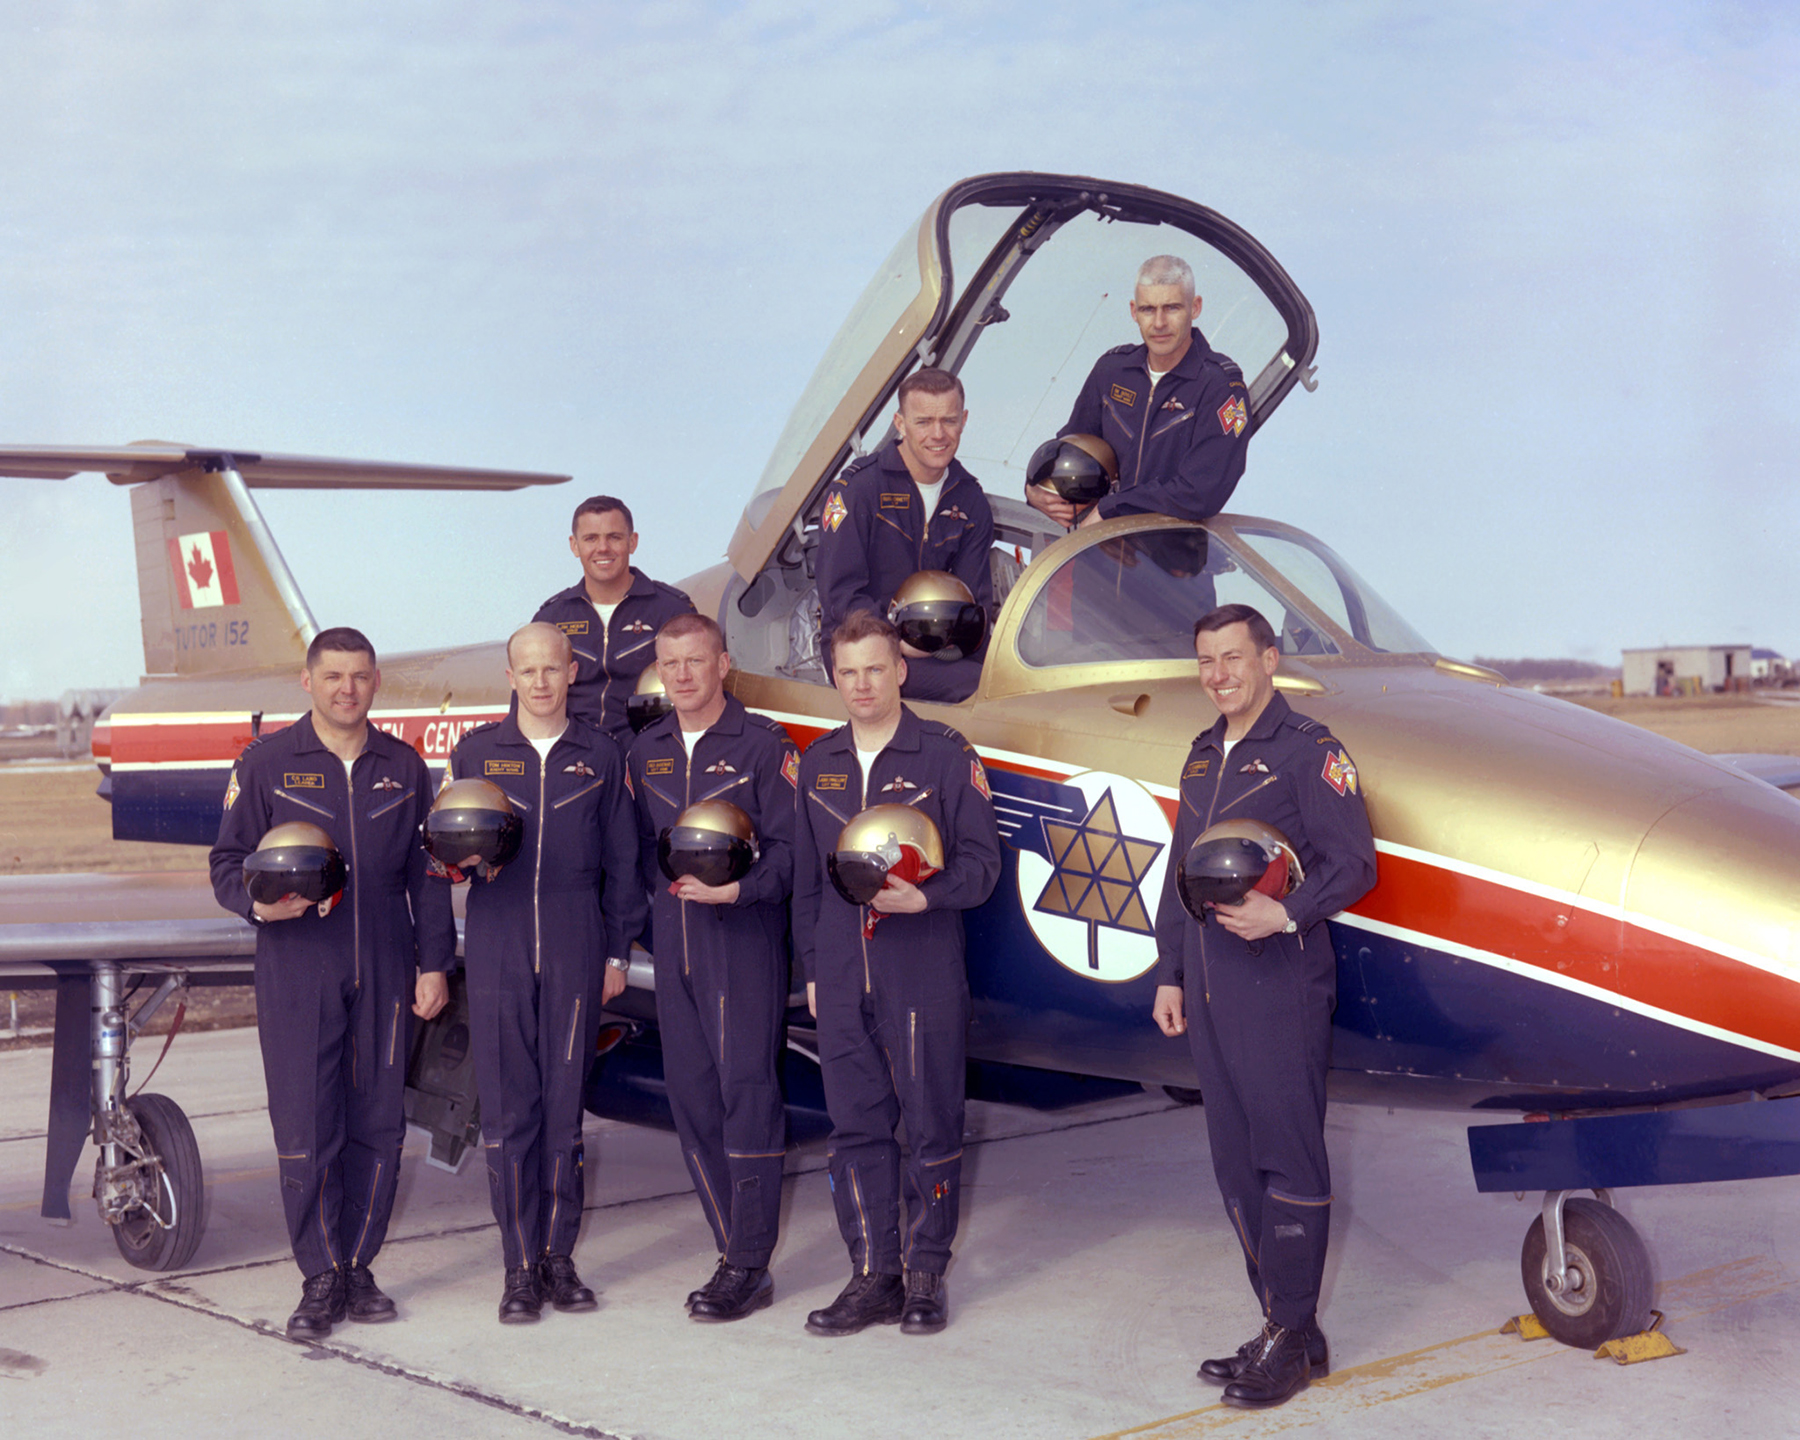 The Golden Centennaires Tutor pilots in Portage la Prairie, Manitoba, on April 6, 1967. Front, from left: Squadron Leader Clarence Lang, Flight Lieutenant Tom Hinton, Flight Lieutenant Red Dagenais, Flight Lieutenant John Swallow, and Flight Lieutenant Bill Slaughter, Back, from left:  Flying Officer Jim McKay, Flight Lieutenant Russ Bennett, and Flight Lieutenant B.K. Doyle. Flight Lieutenants Bennett and Doyle were promoted to squadron leader before the start of the season PHOTO: DND Archives, WG67-104-3